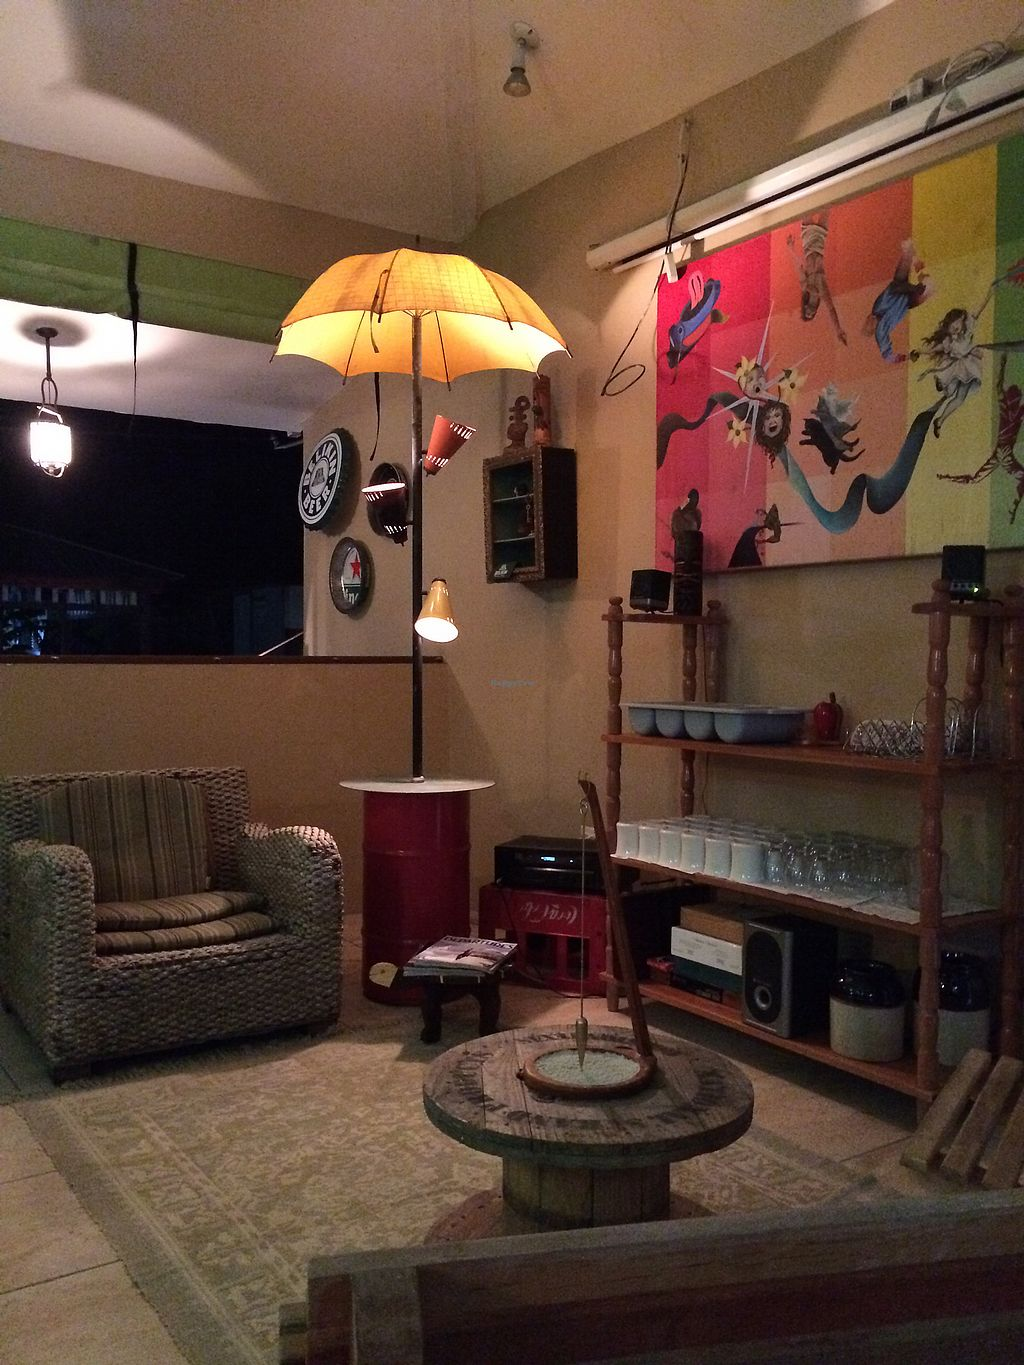 """Photo of Iguana Jaun's  by <a href=""""/members/profile/iguana-juans"""">iguana-juans</a> <br/>Fun, eclectic feel  <br/> April 19, 2018  - <a href='/contact/abuse/image/116286/388003'>Report</a>"""